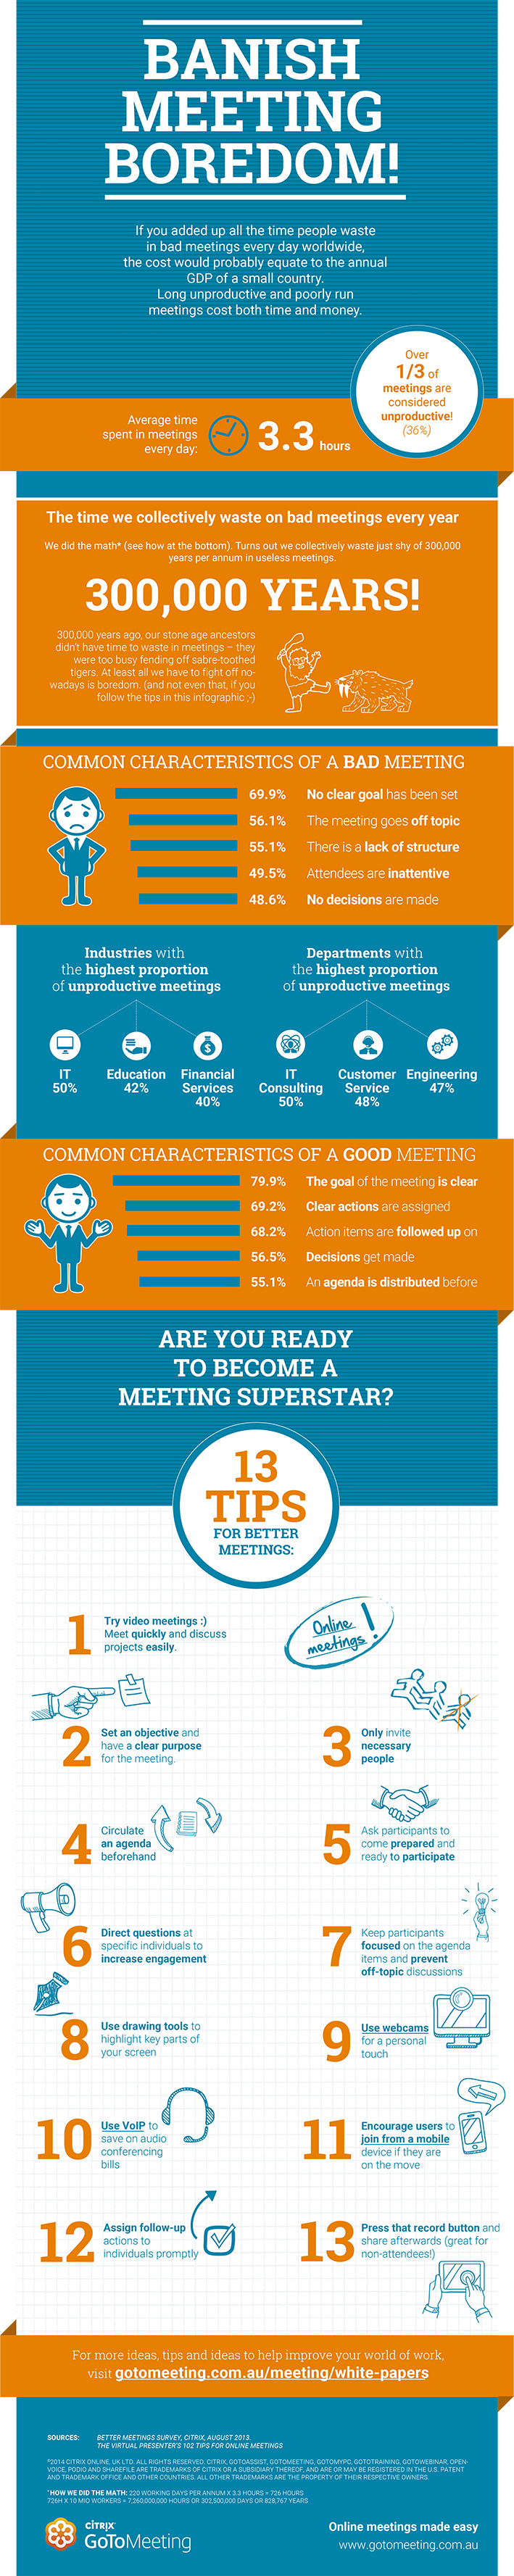 Insiders Guides To Better Meetings Infographic